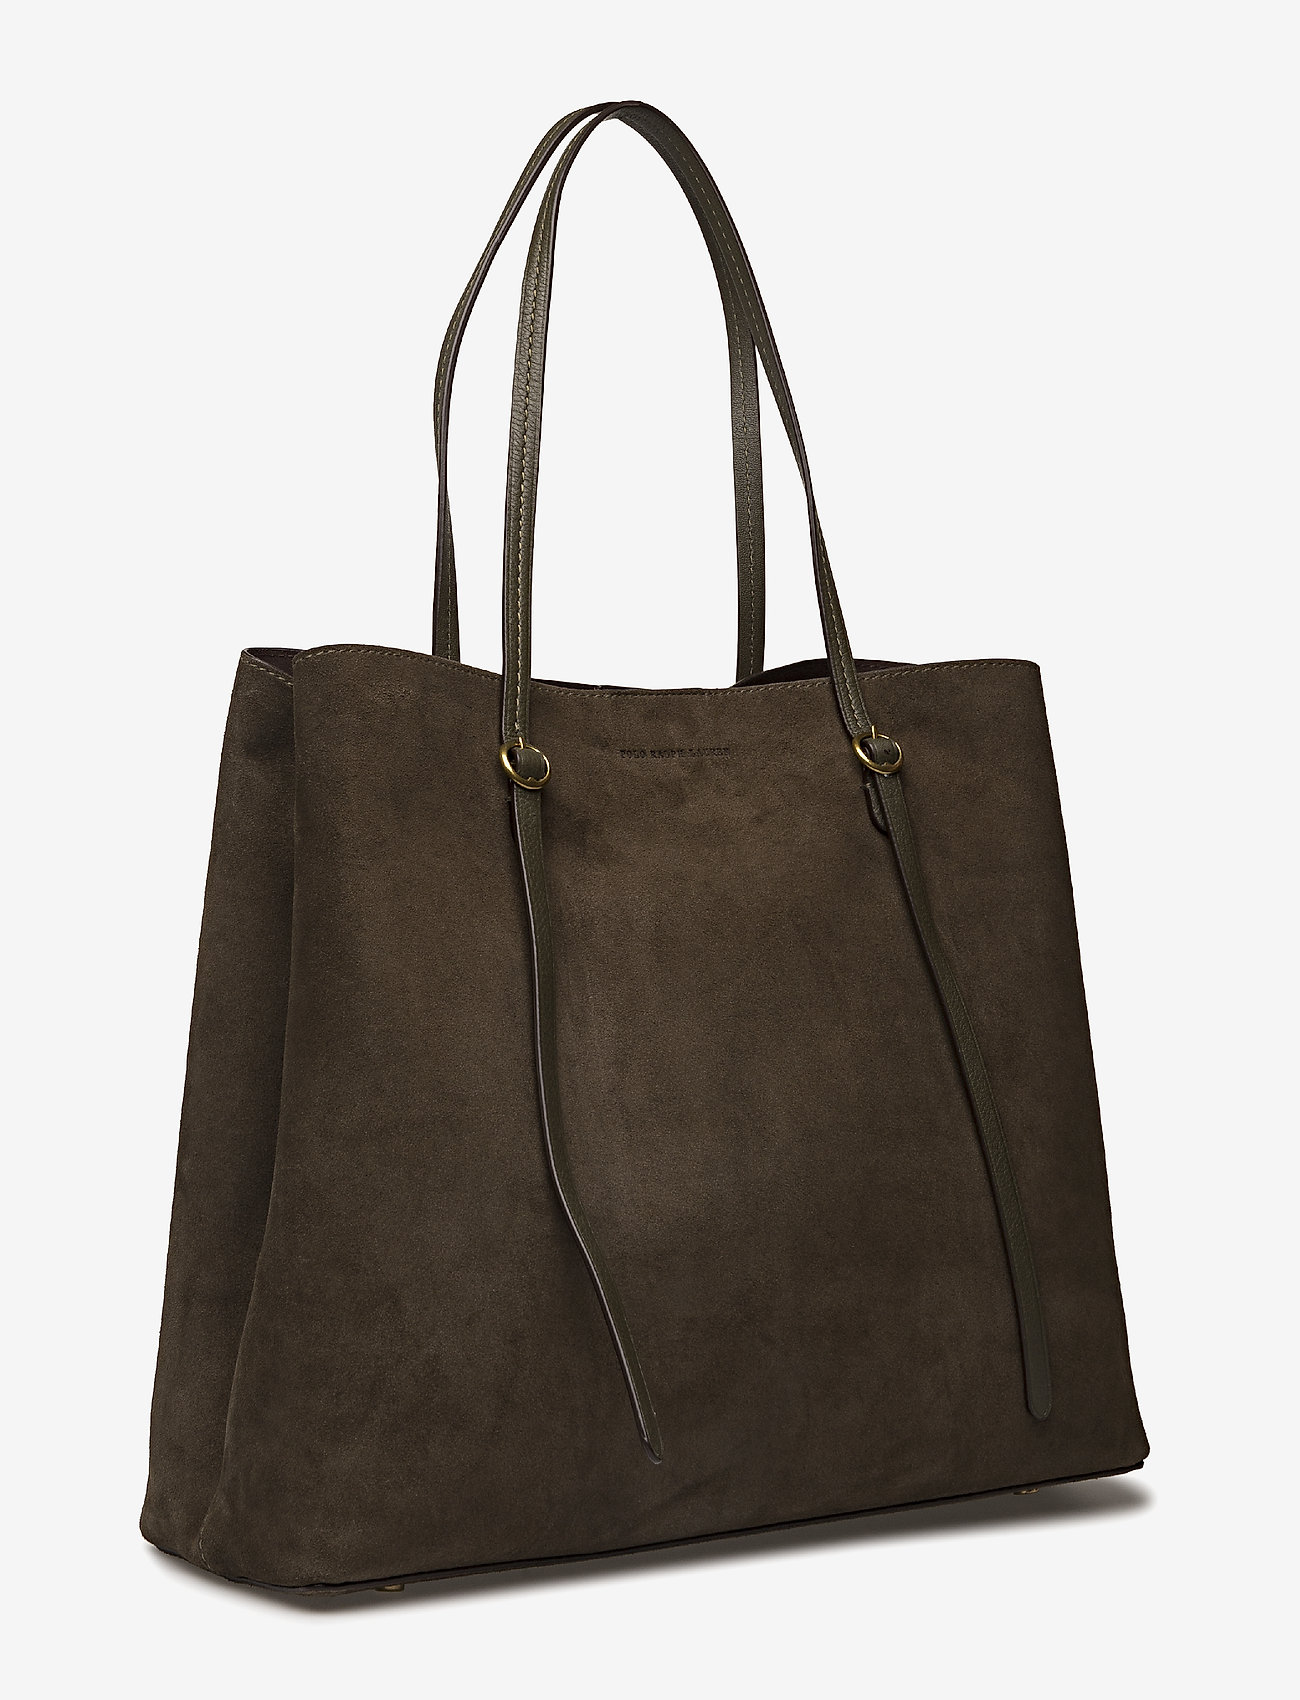 Polo Ralph Lauren Suede Lennox Tote - Shoppers Olive